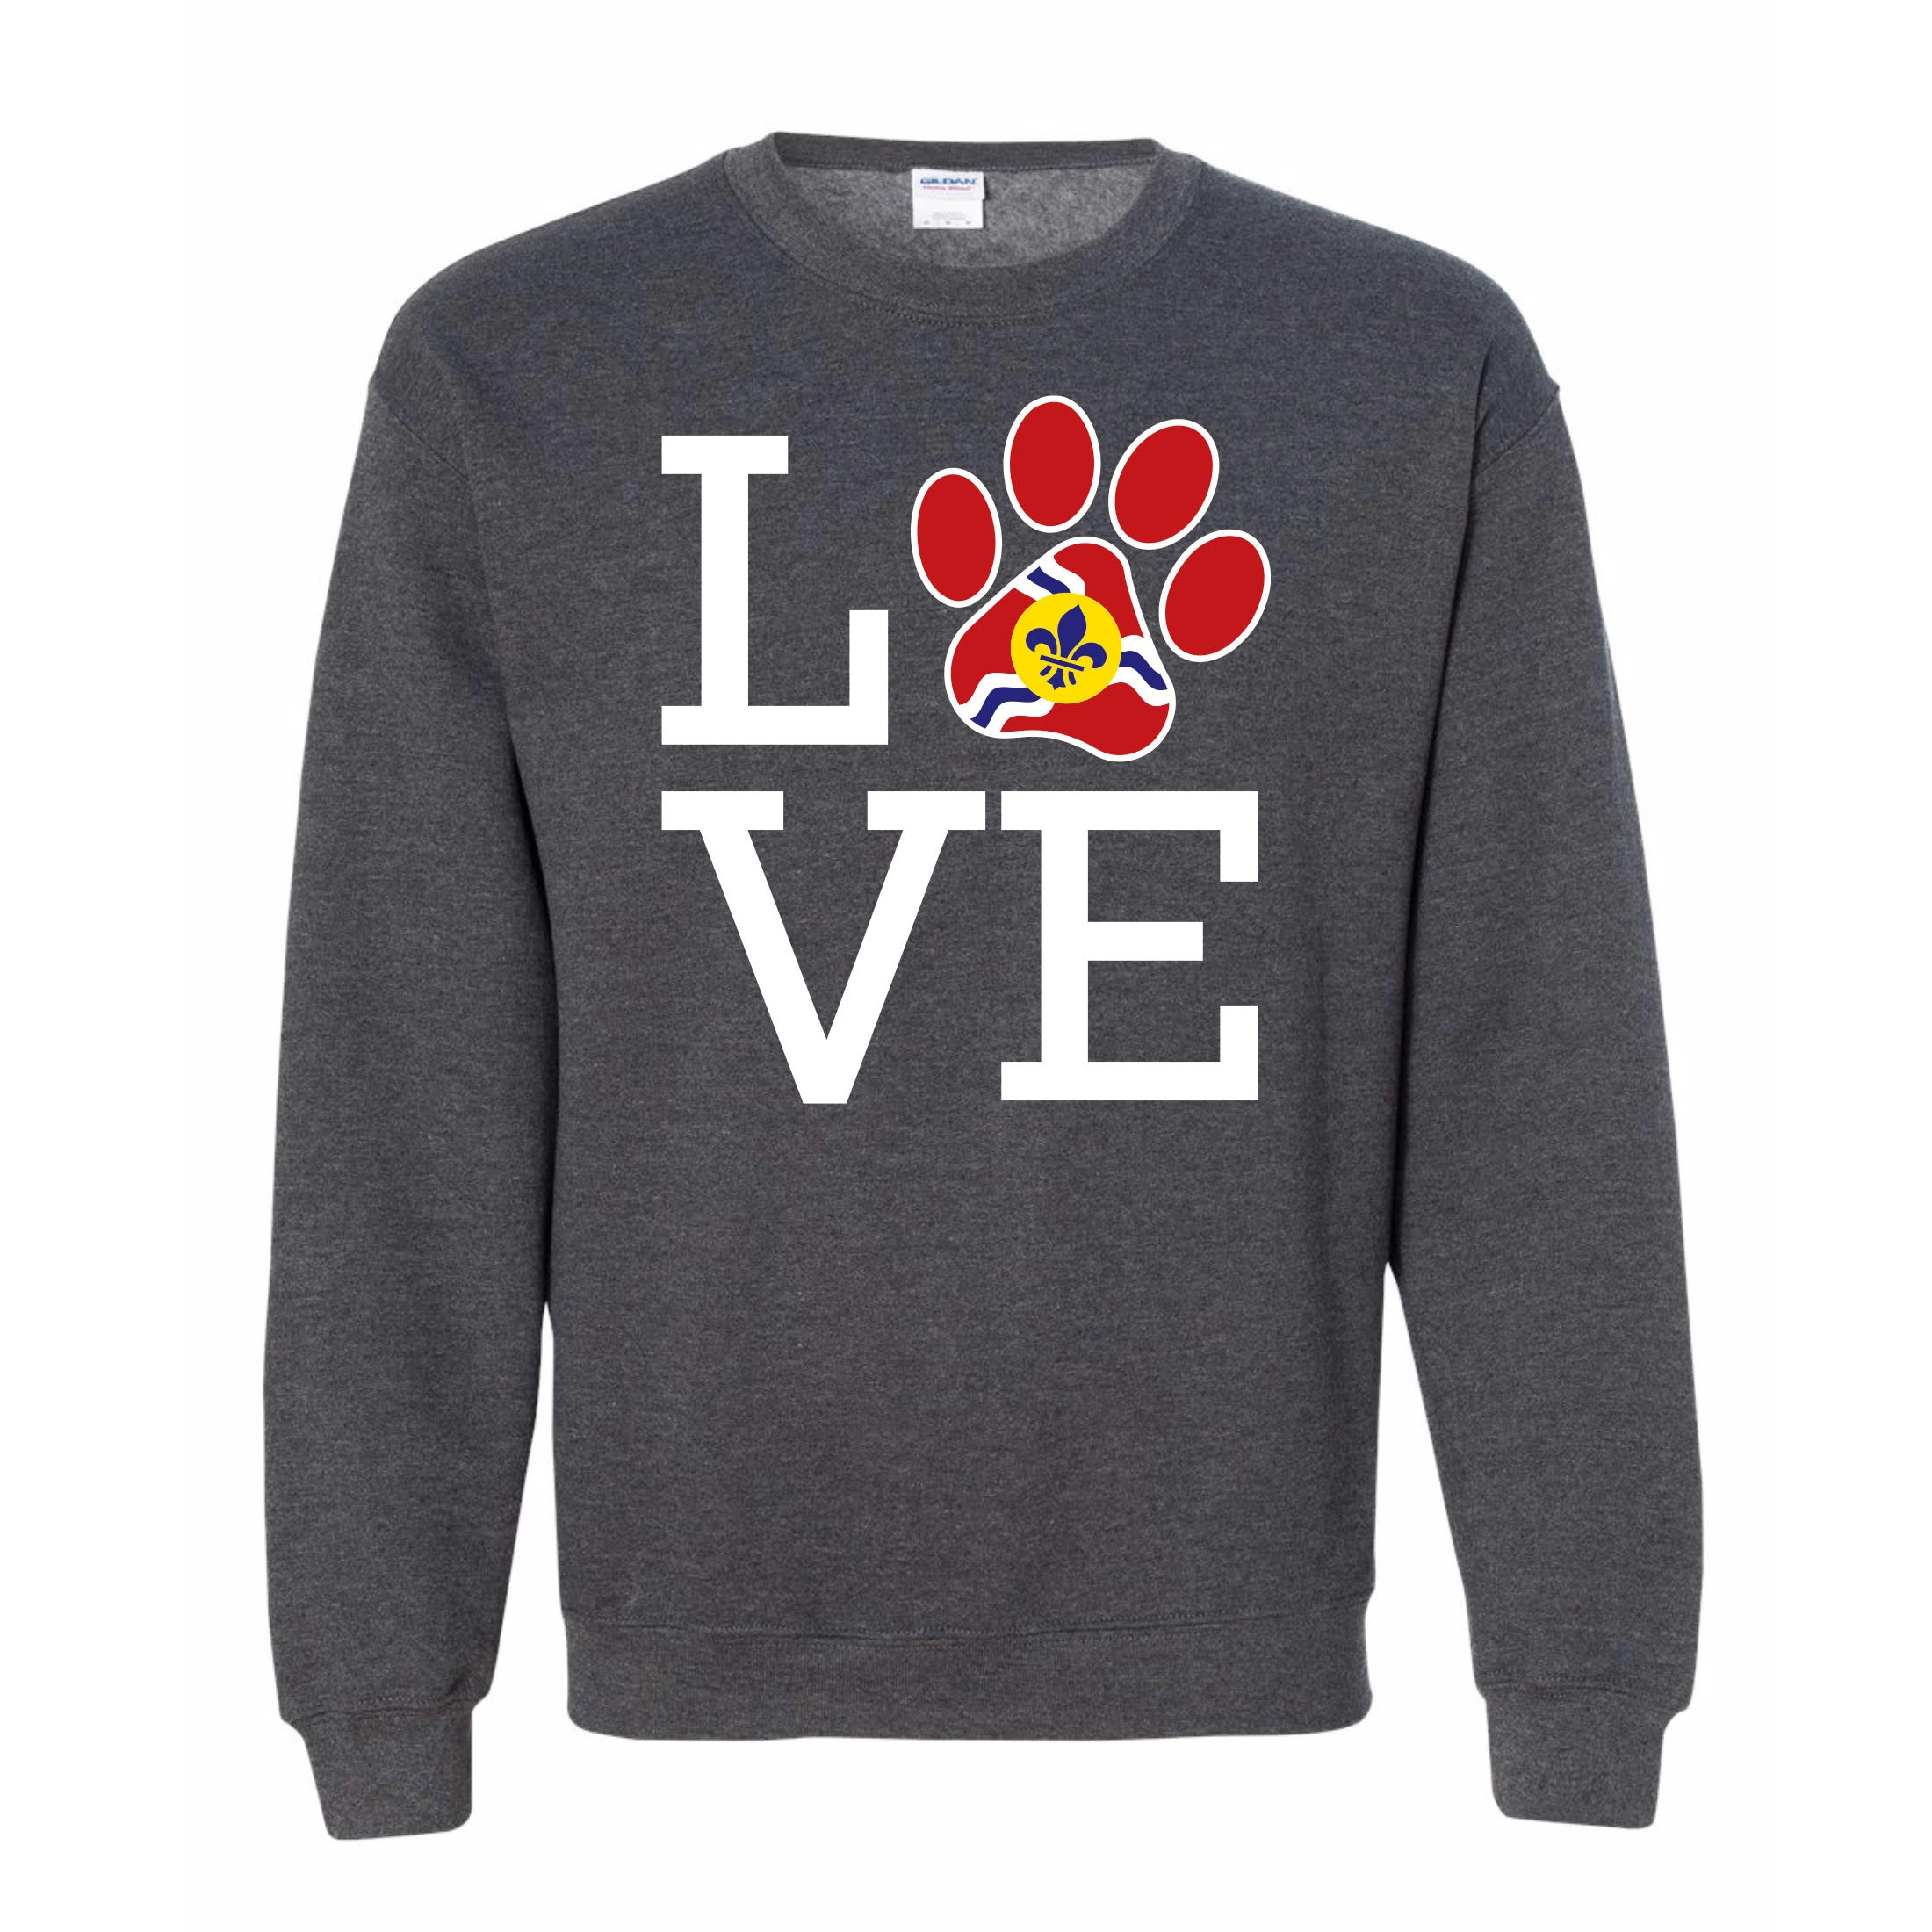 """- Heather Grey Sweatshirt """"STL Love""""$30.00- Super Soft combed and ringspun cotton or cotton/polyester depending on color- Side seams, retail fit- Shoulder to shoulder taping- Unisex sizing"""